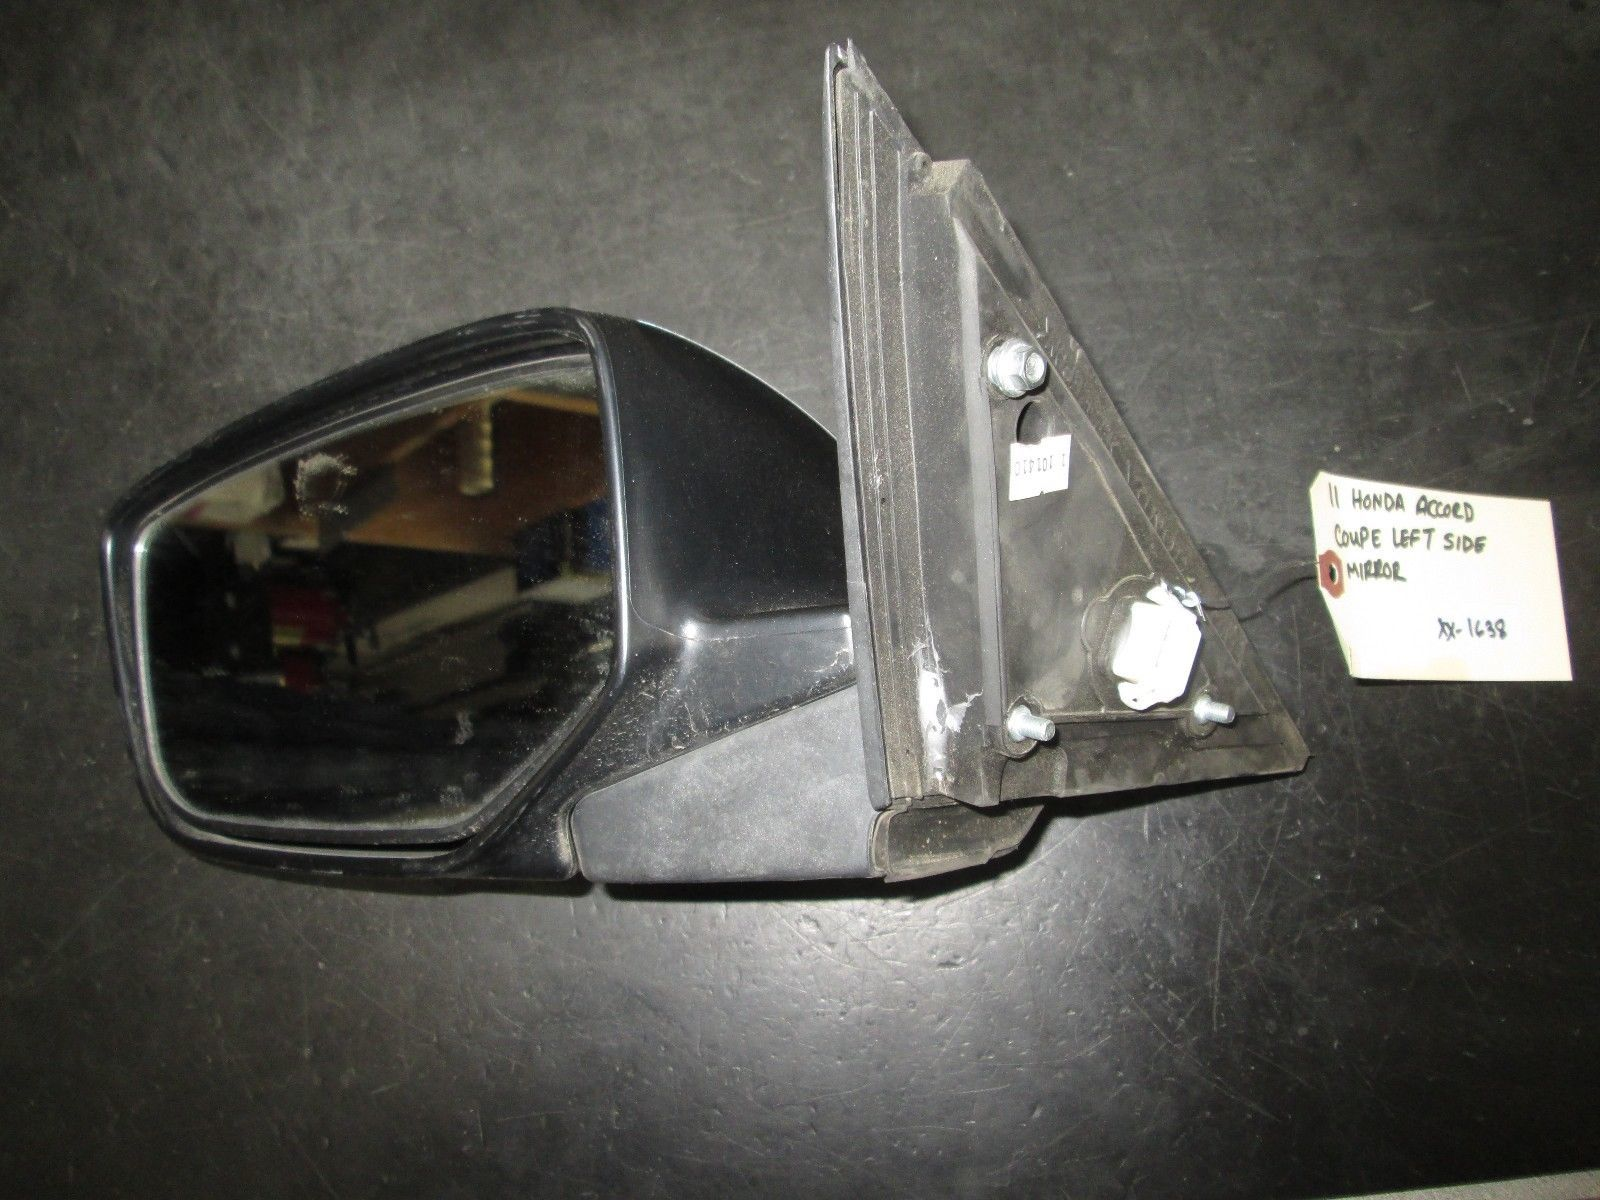 Primary image for 11 HONDA ACCORD COUPE LEFT SIDE MIRROR